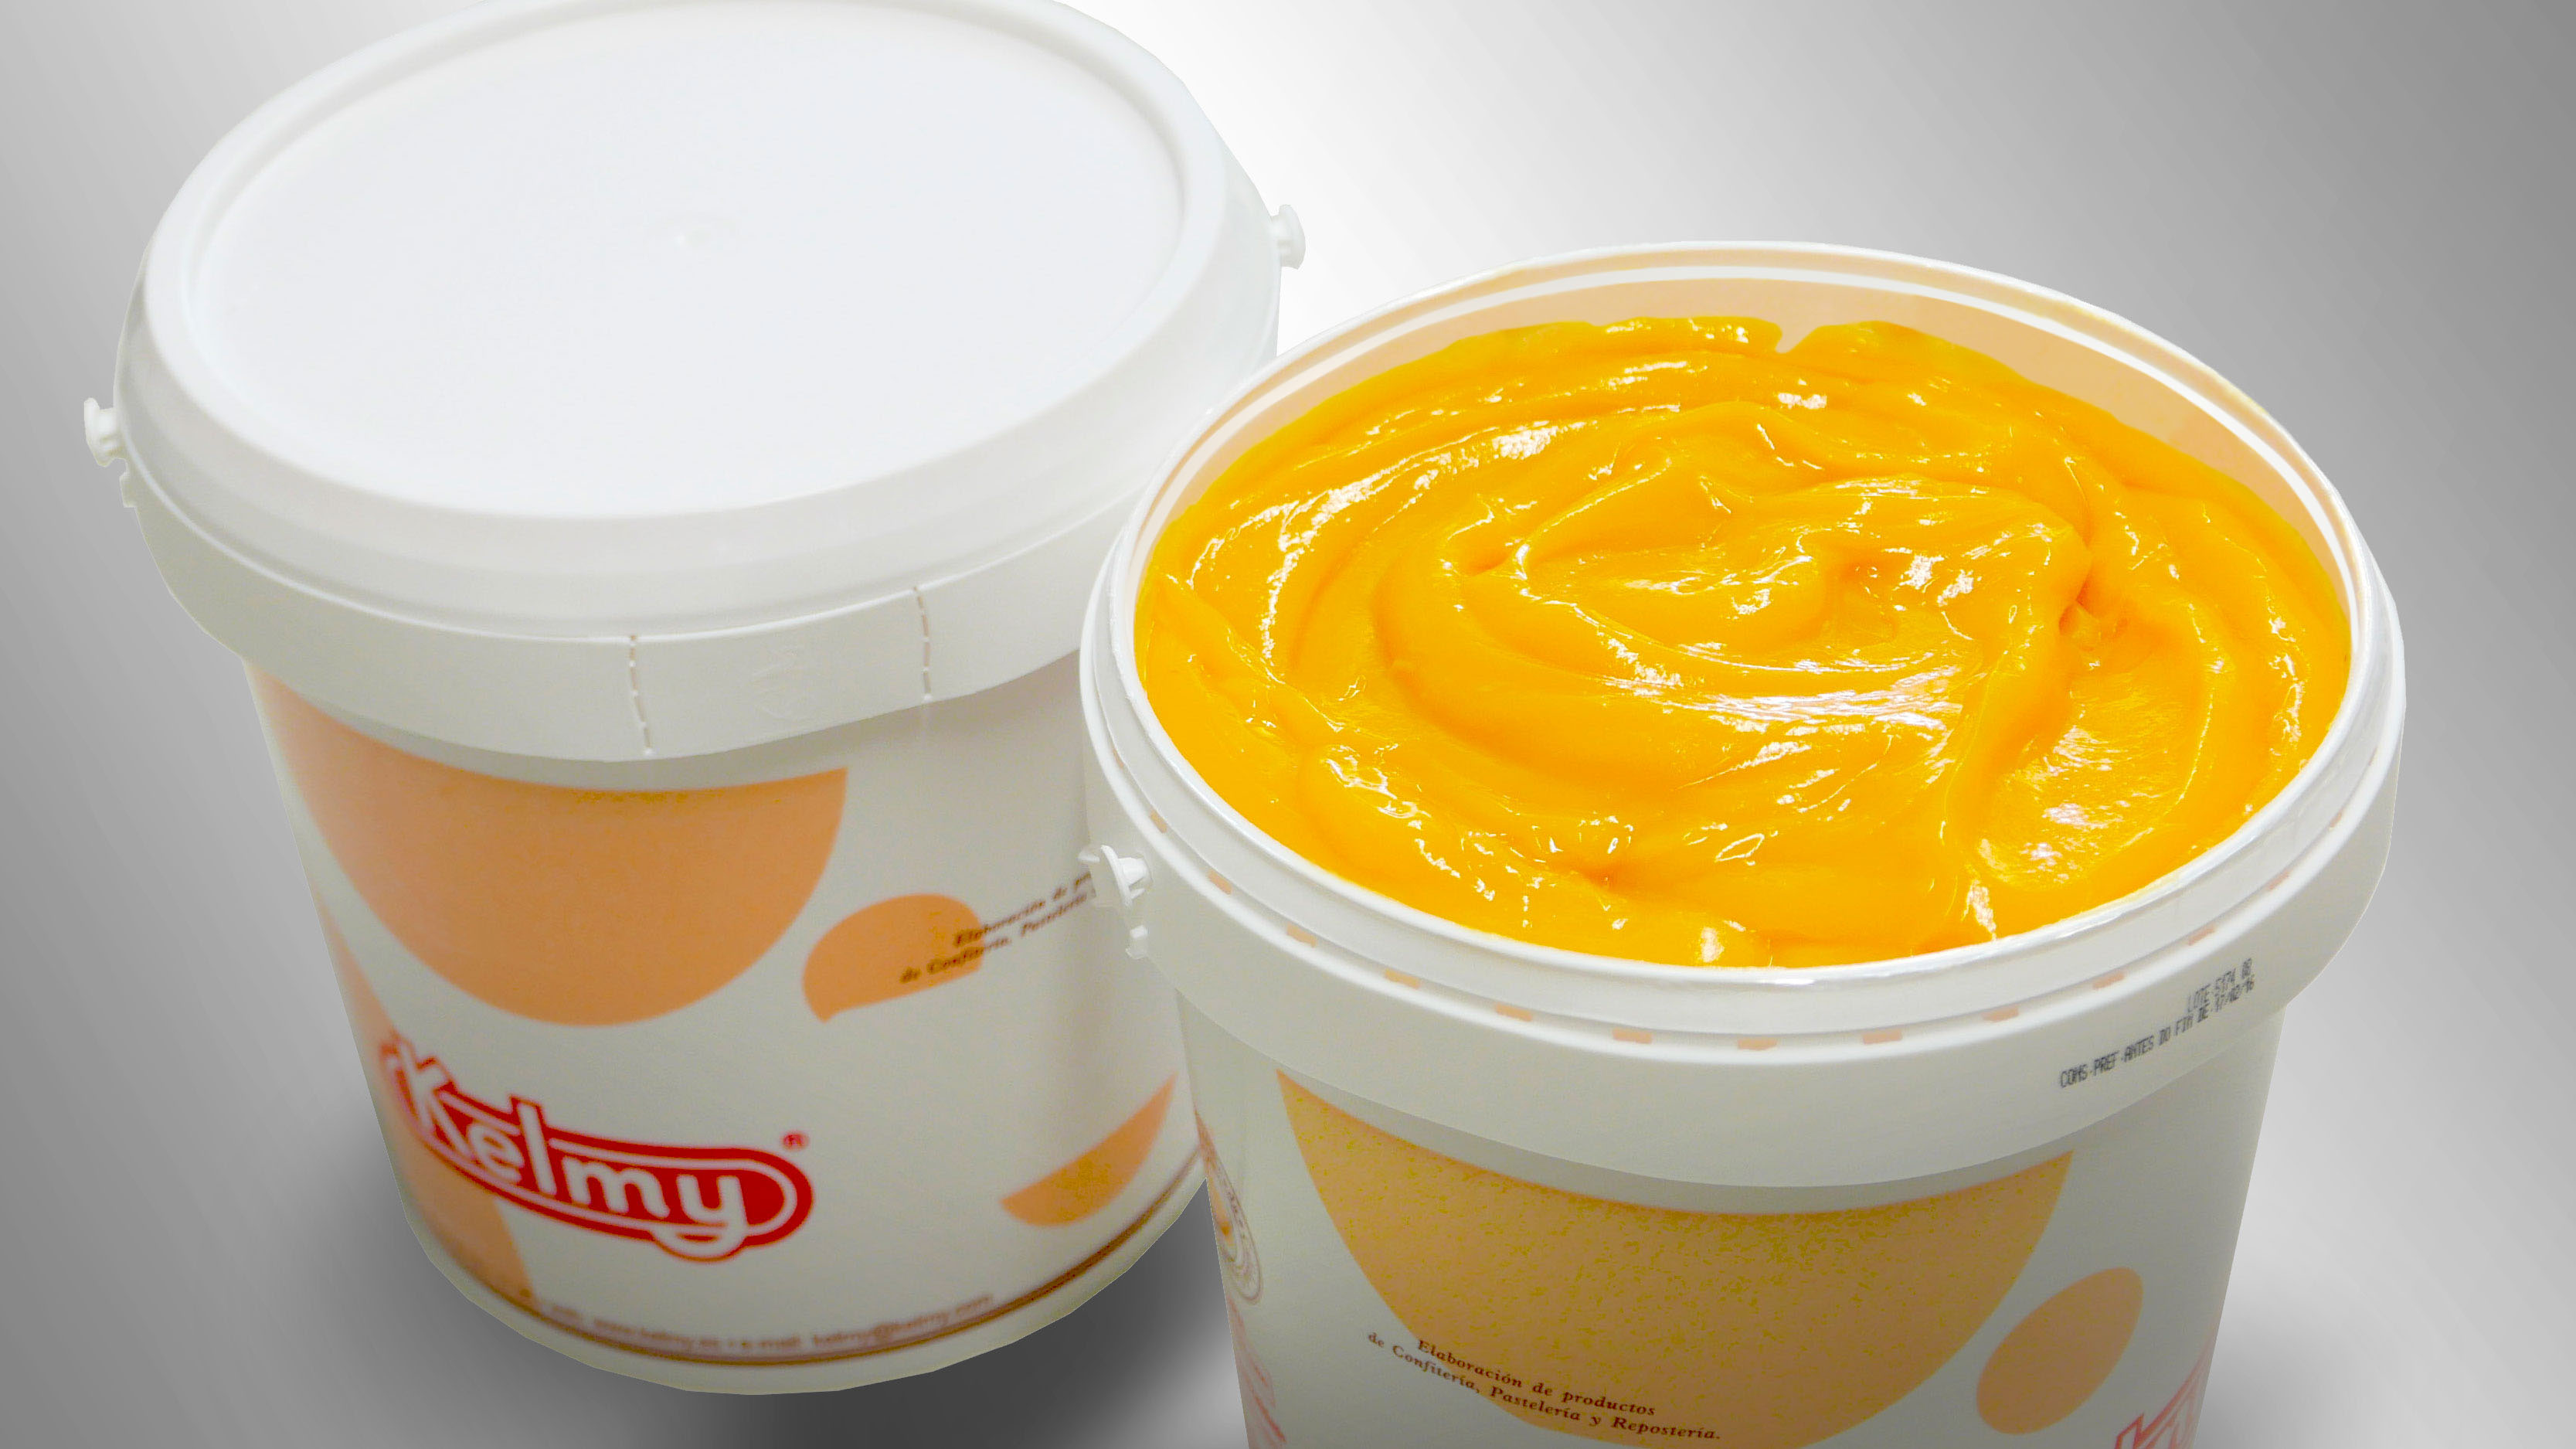 Yolk ice-cream. Made with 50% egg yolk and sugar. Used in making the creams made in ice-cream parlours as a substitute for the fresh egg used for making these creams in order to avoid the possible risks of microbiological contamination.